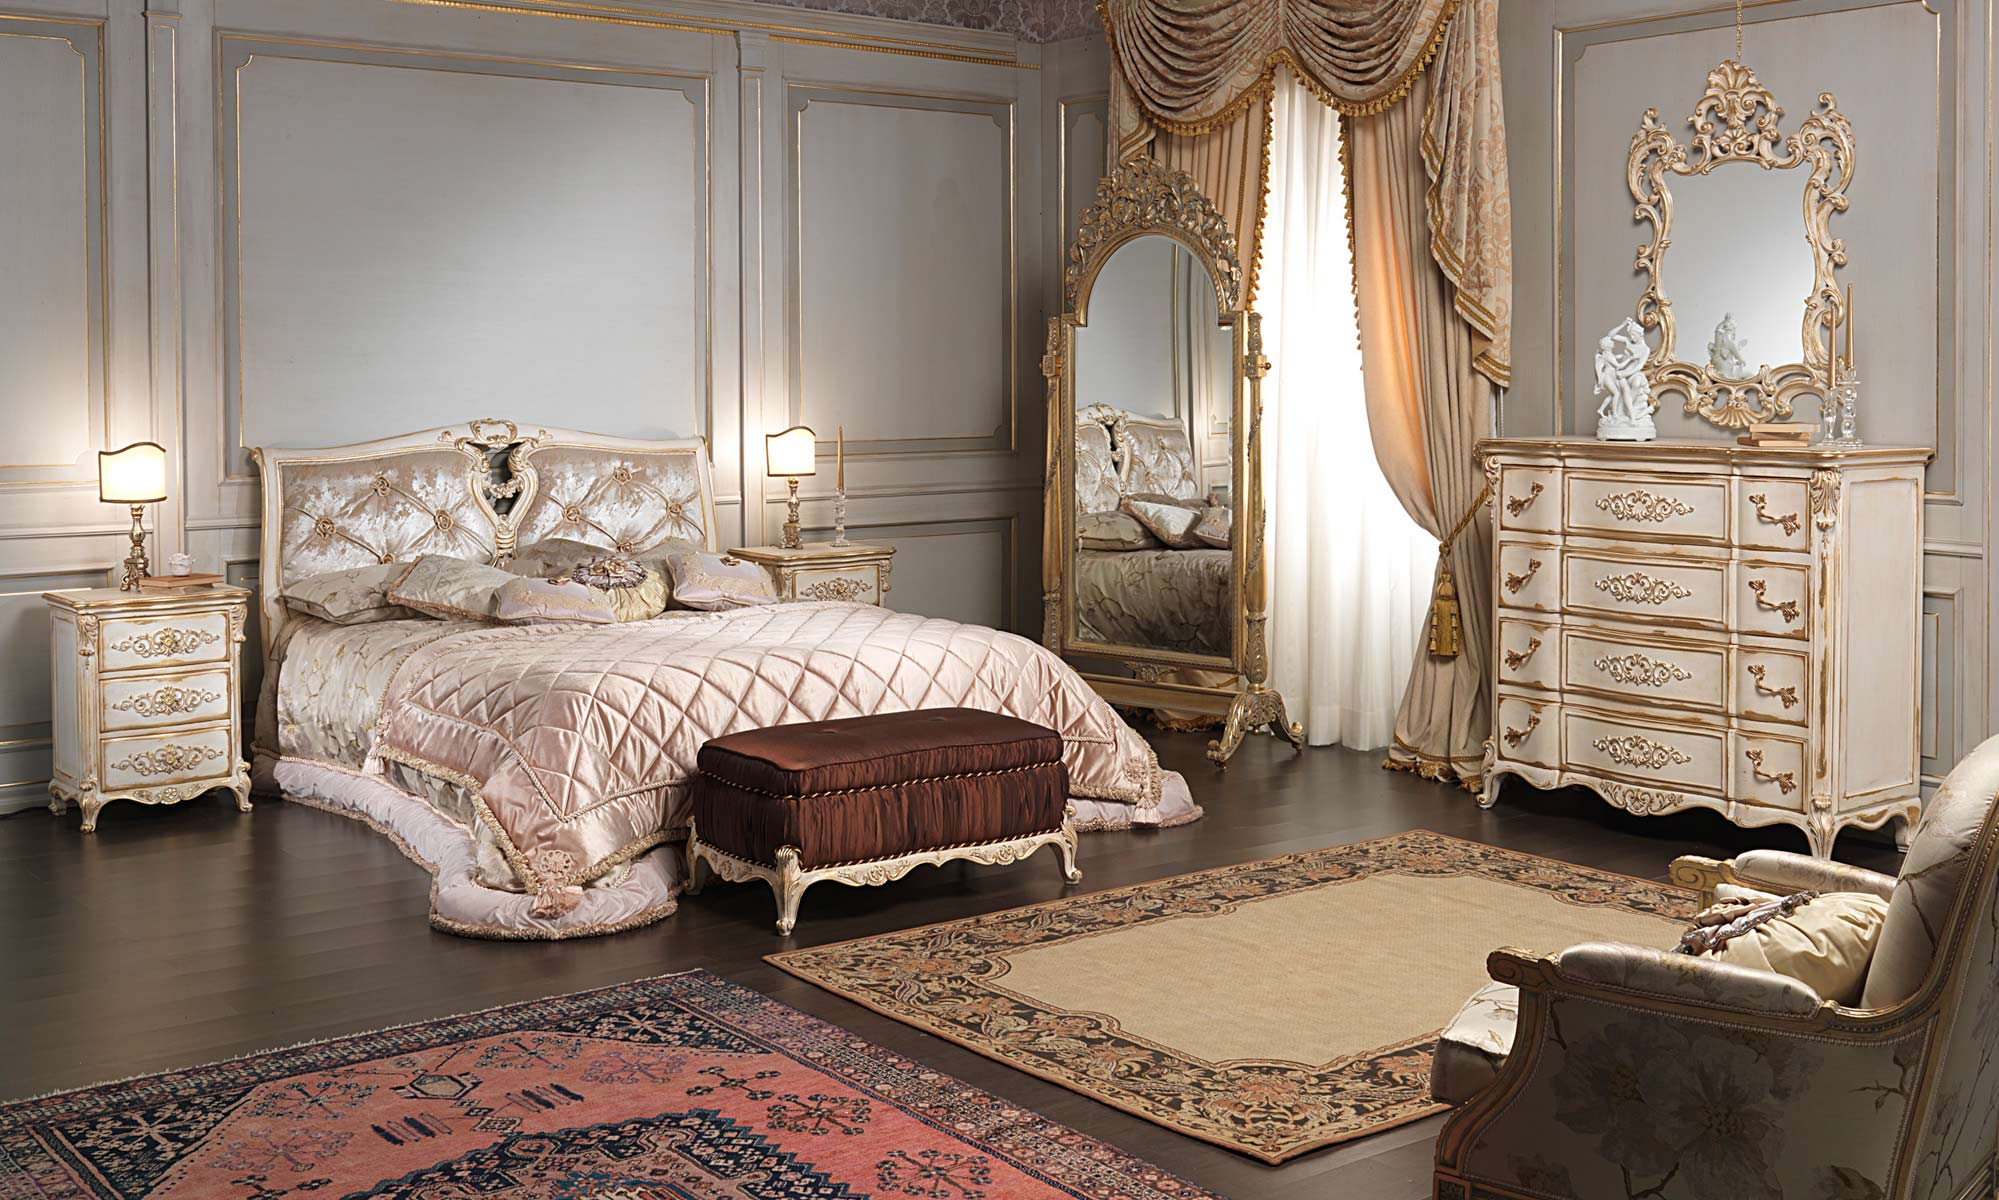 Classic Louis XVI bedroom, bed, padded bench, chest of